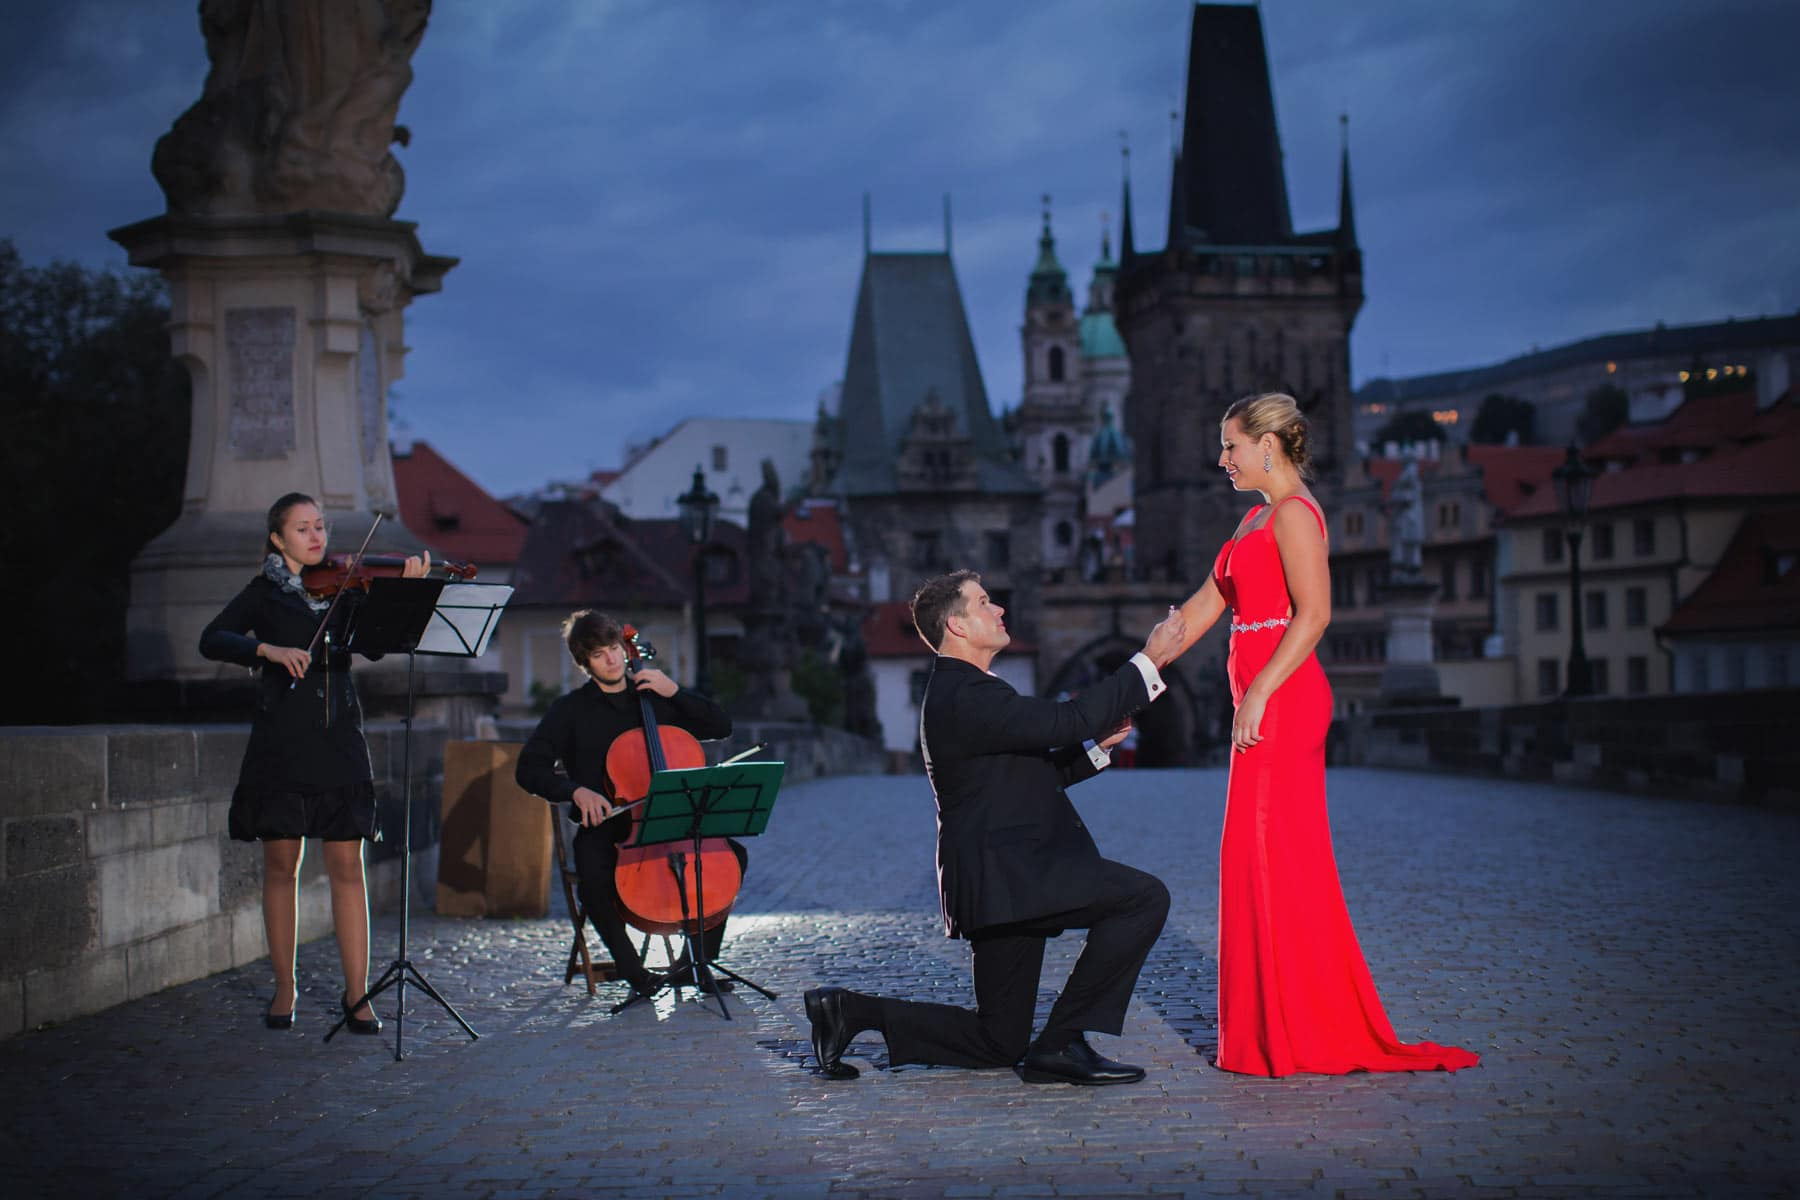 Lauren & Gustav's marriage proposal in Prague